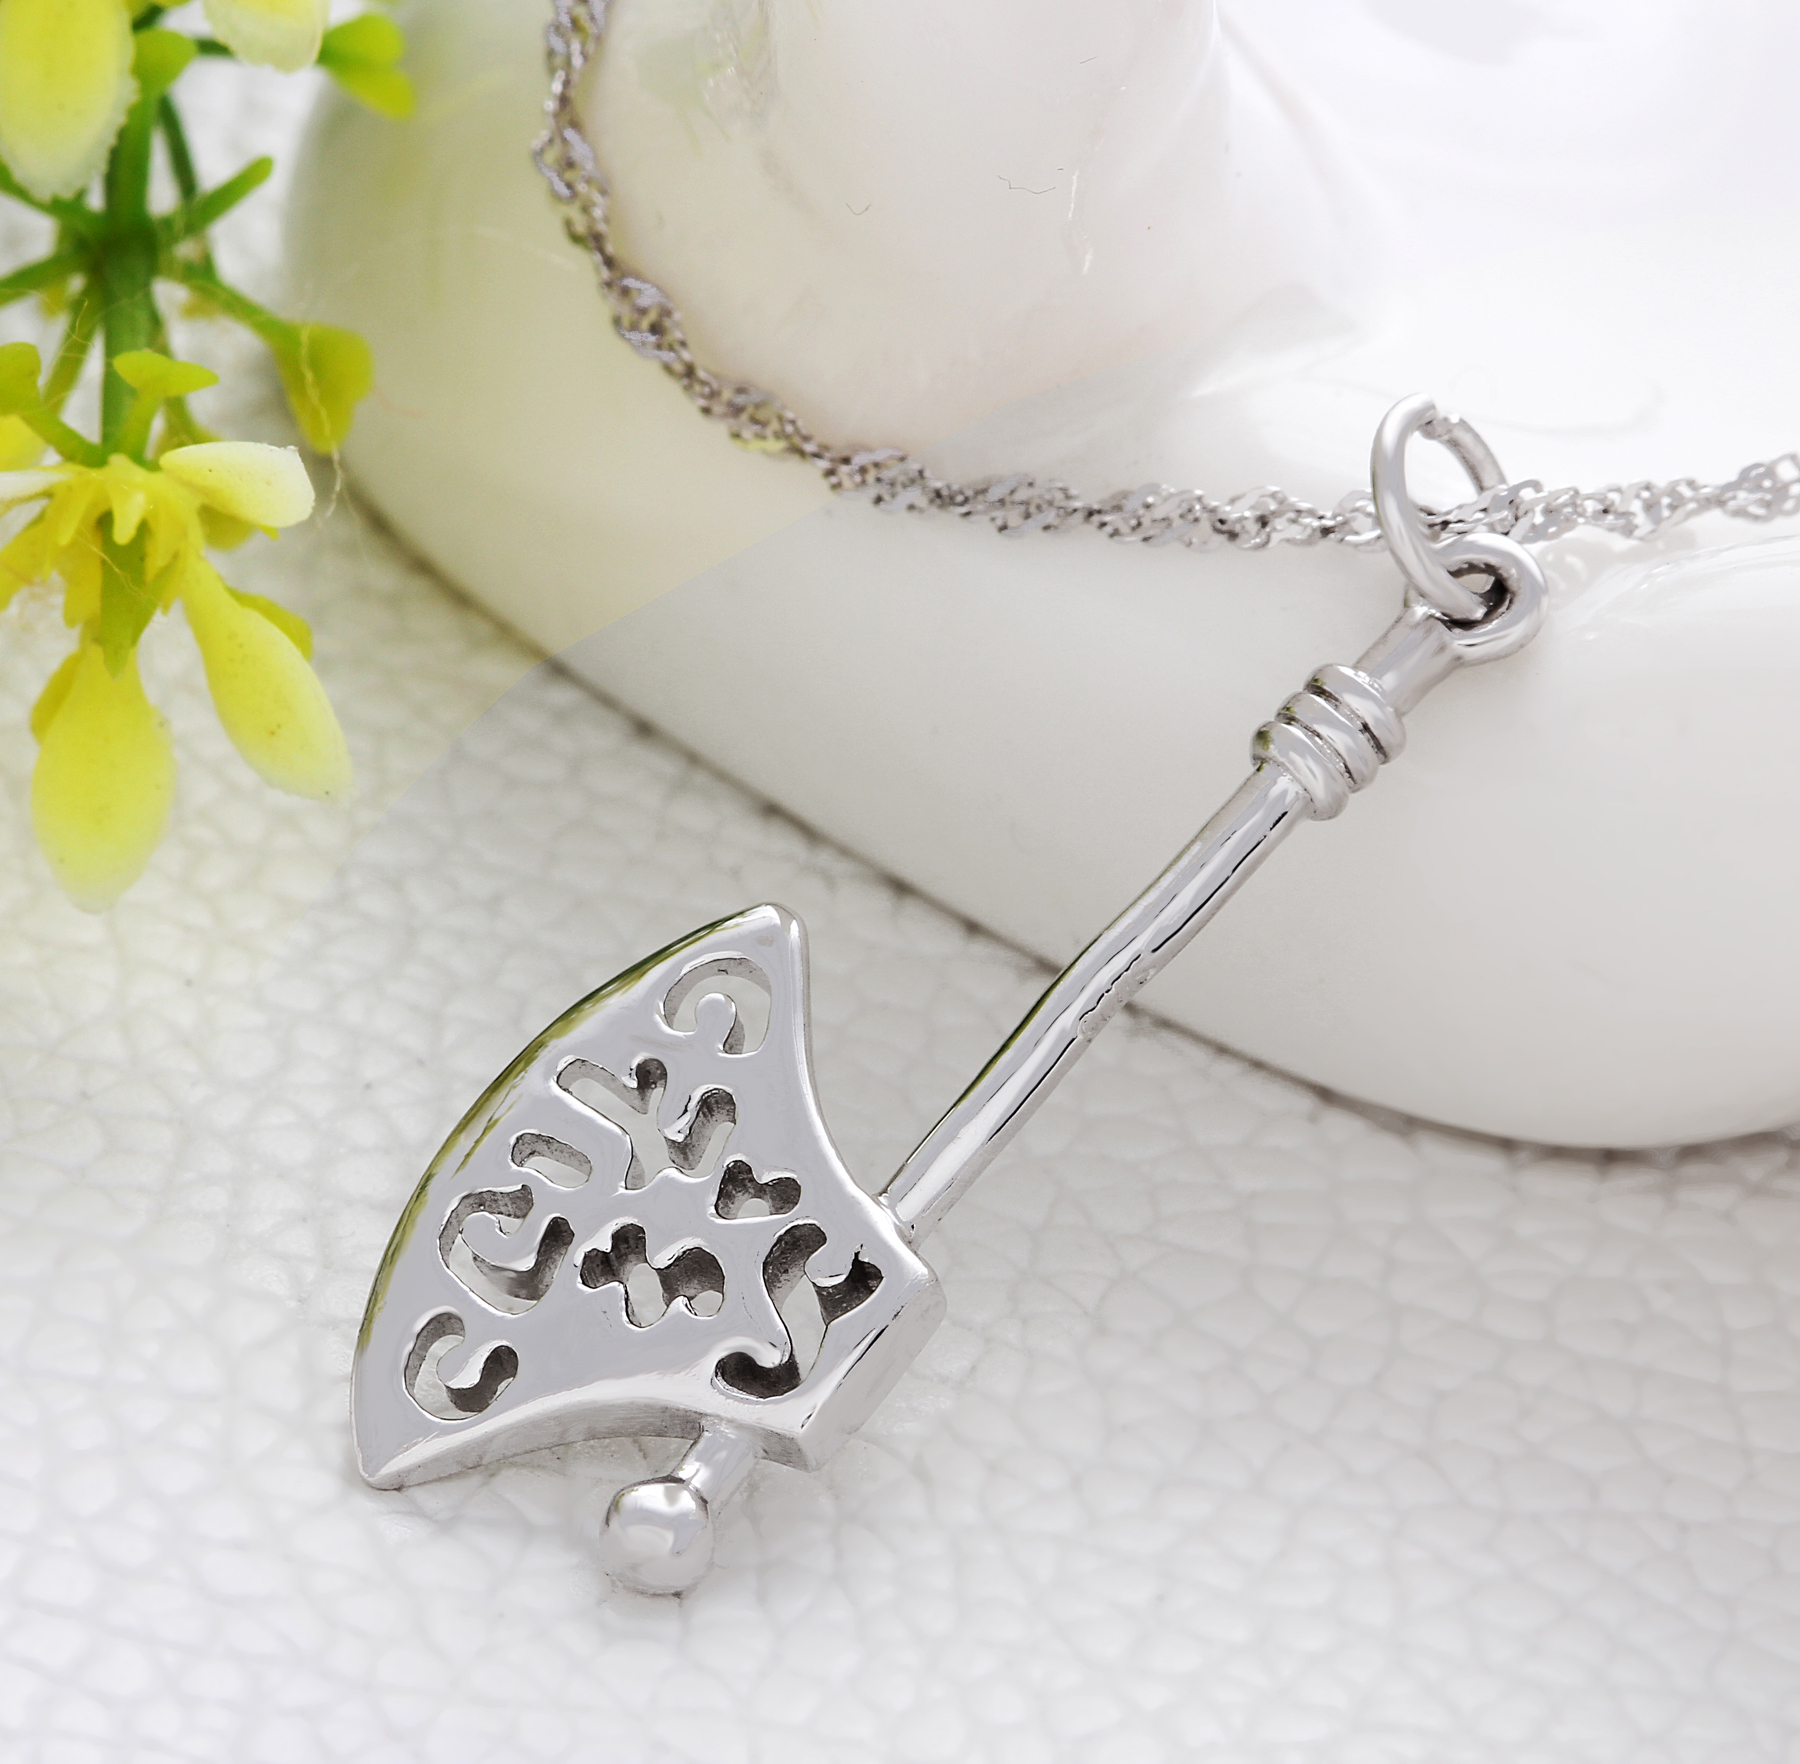 Sterling 925 silver pendant necklace jewelry set with axe pendant sterling 925 silver pendant necklace jewelry set with axe pendant and 18 inch silver chain necklace aloadofball Gallery